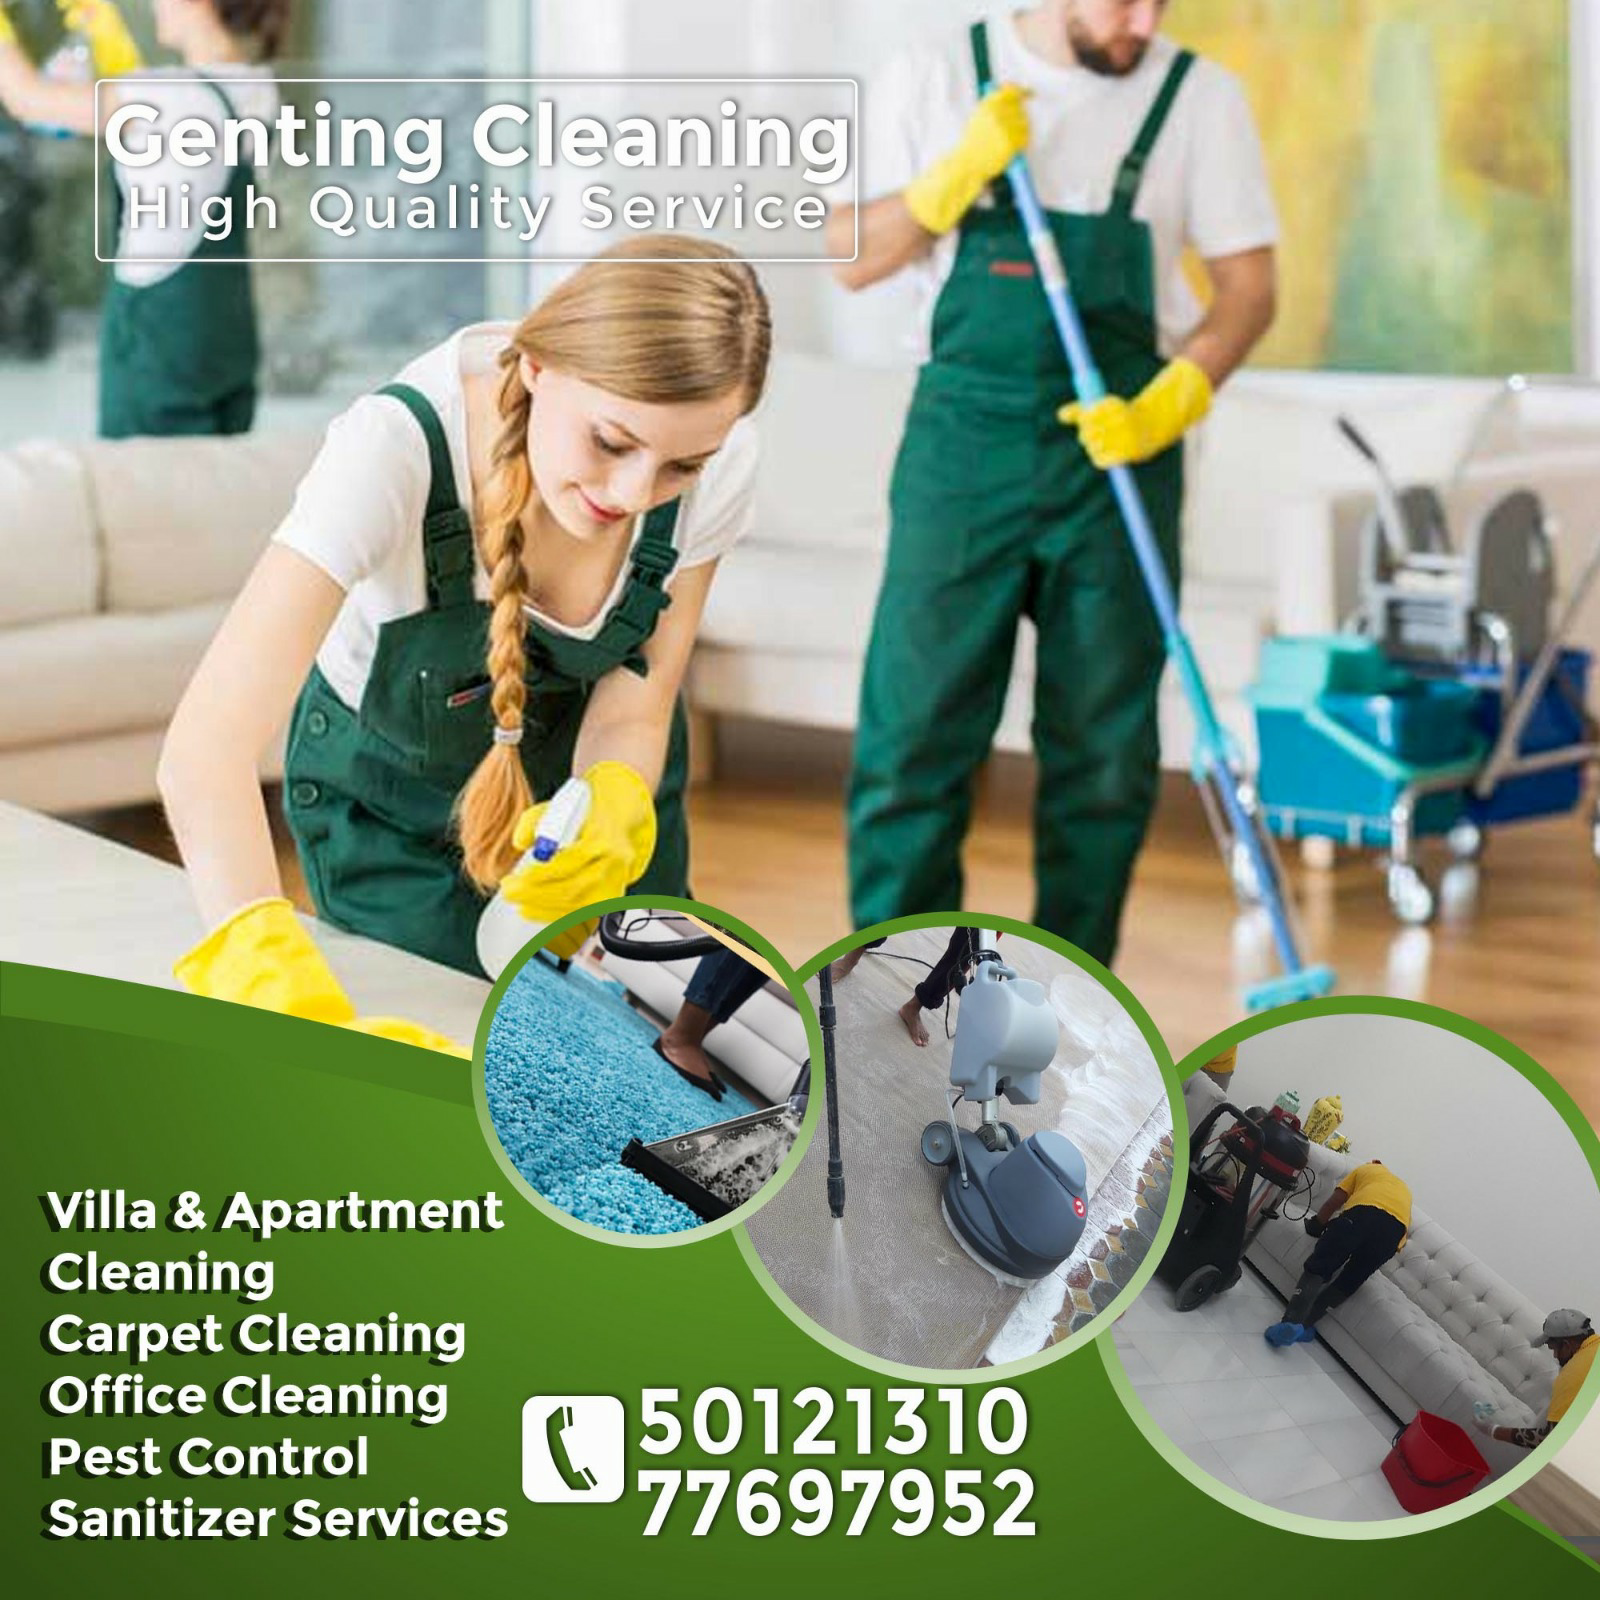 Cleaning, Sanitization, Please call 77697952